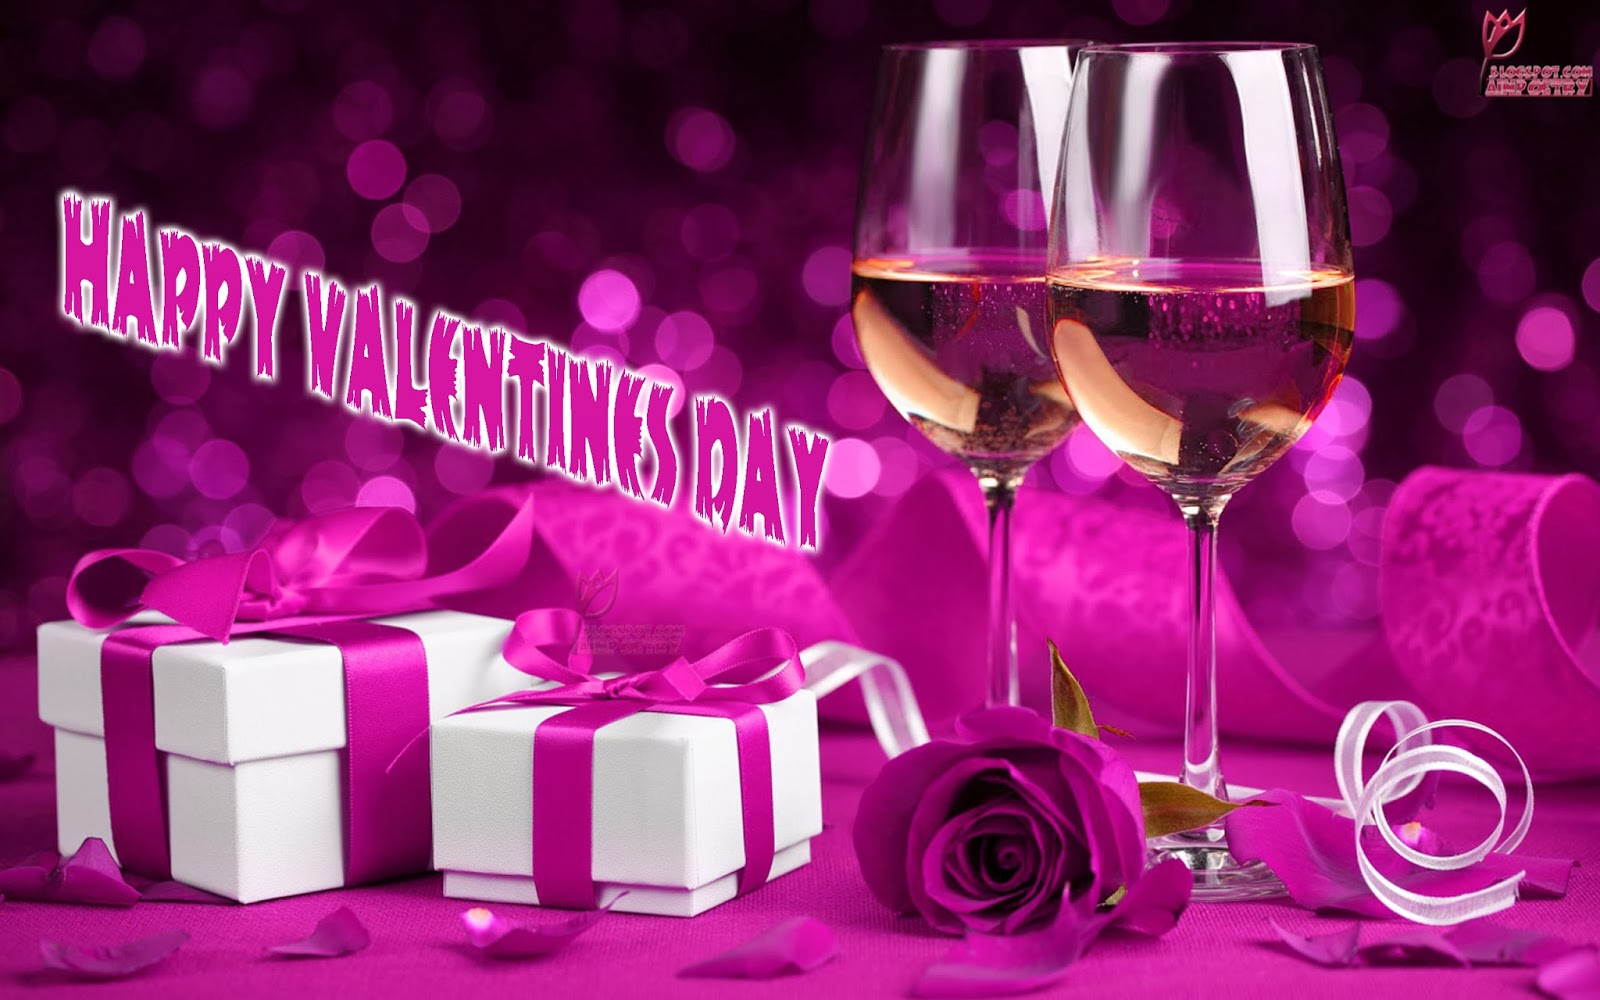 Happy-Valentines-Day-Wallpaper-Wishes-With-Gifts-And-Flowers-In-Pink-Colour-Image-HD